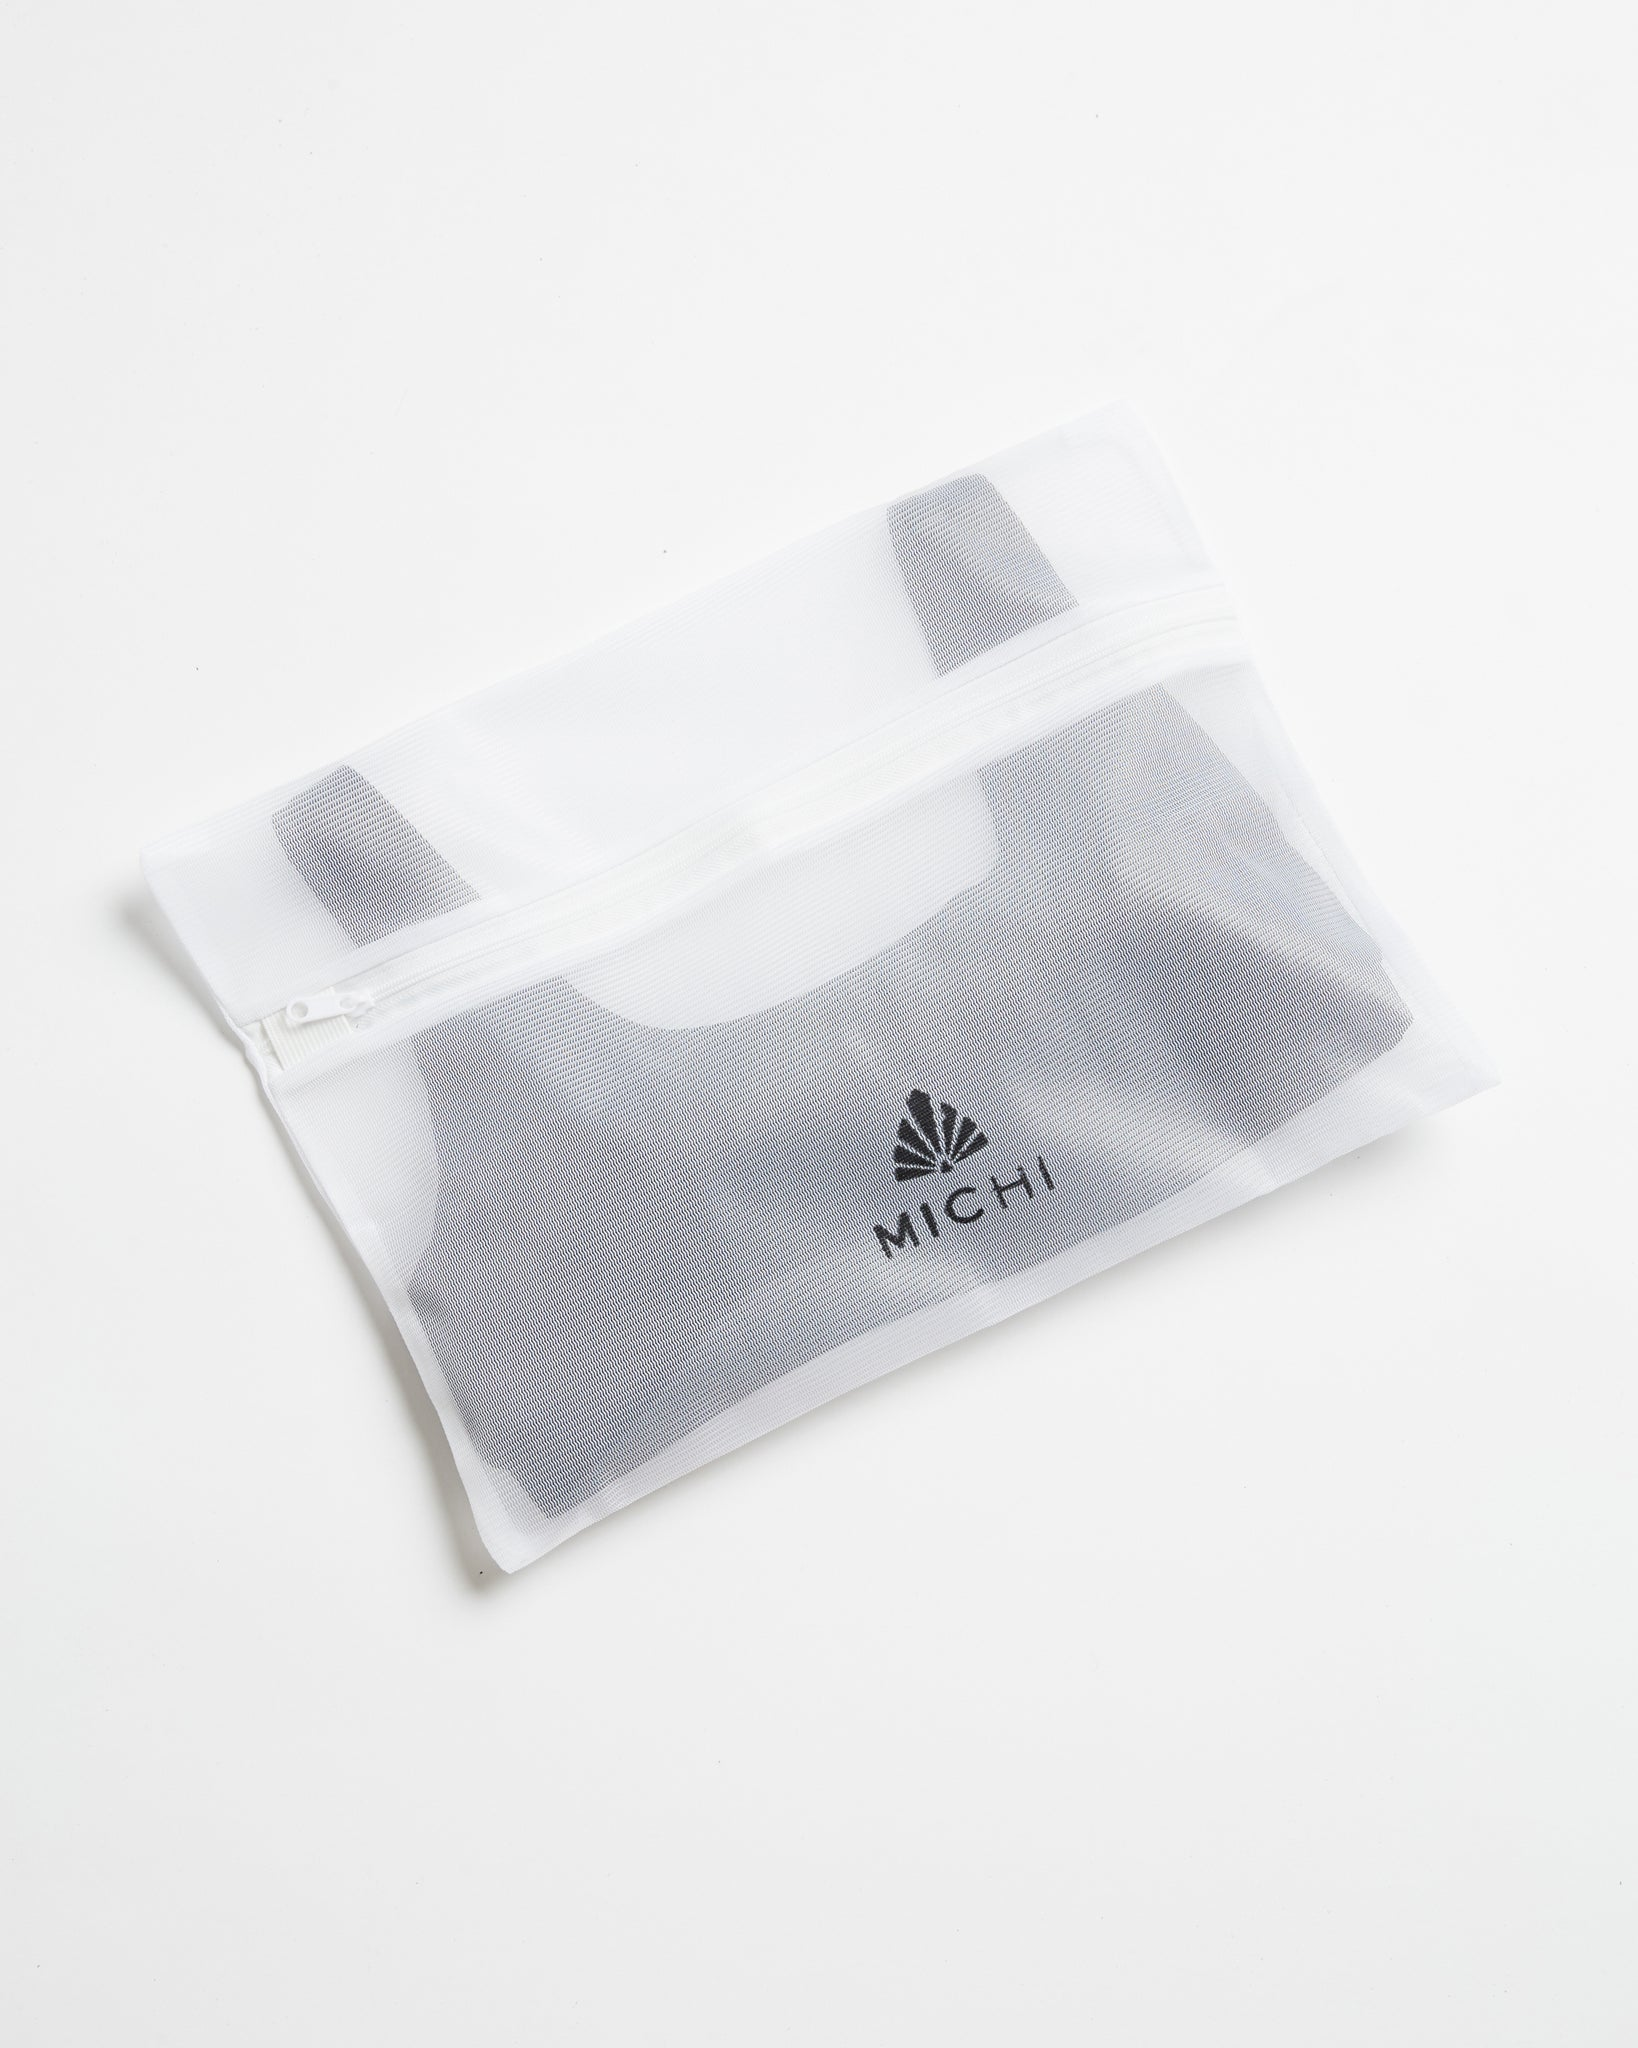 Mesh Bag w/ Zipper - White